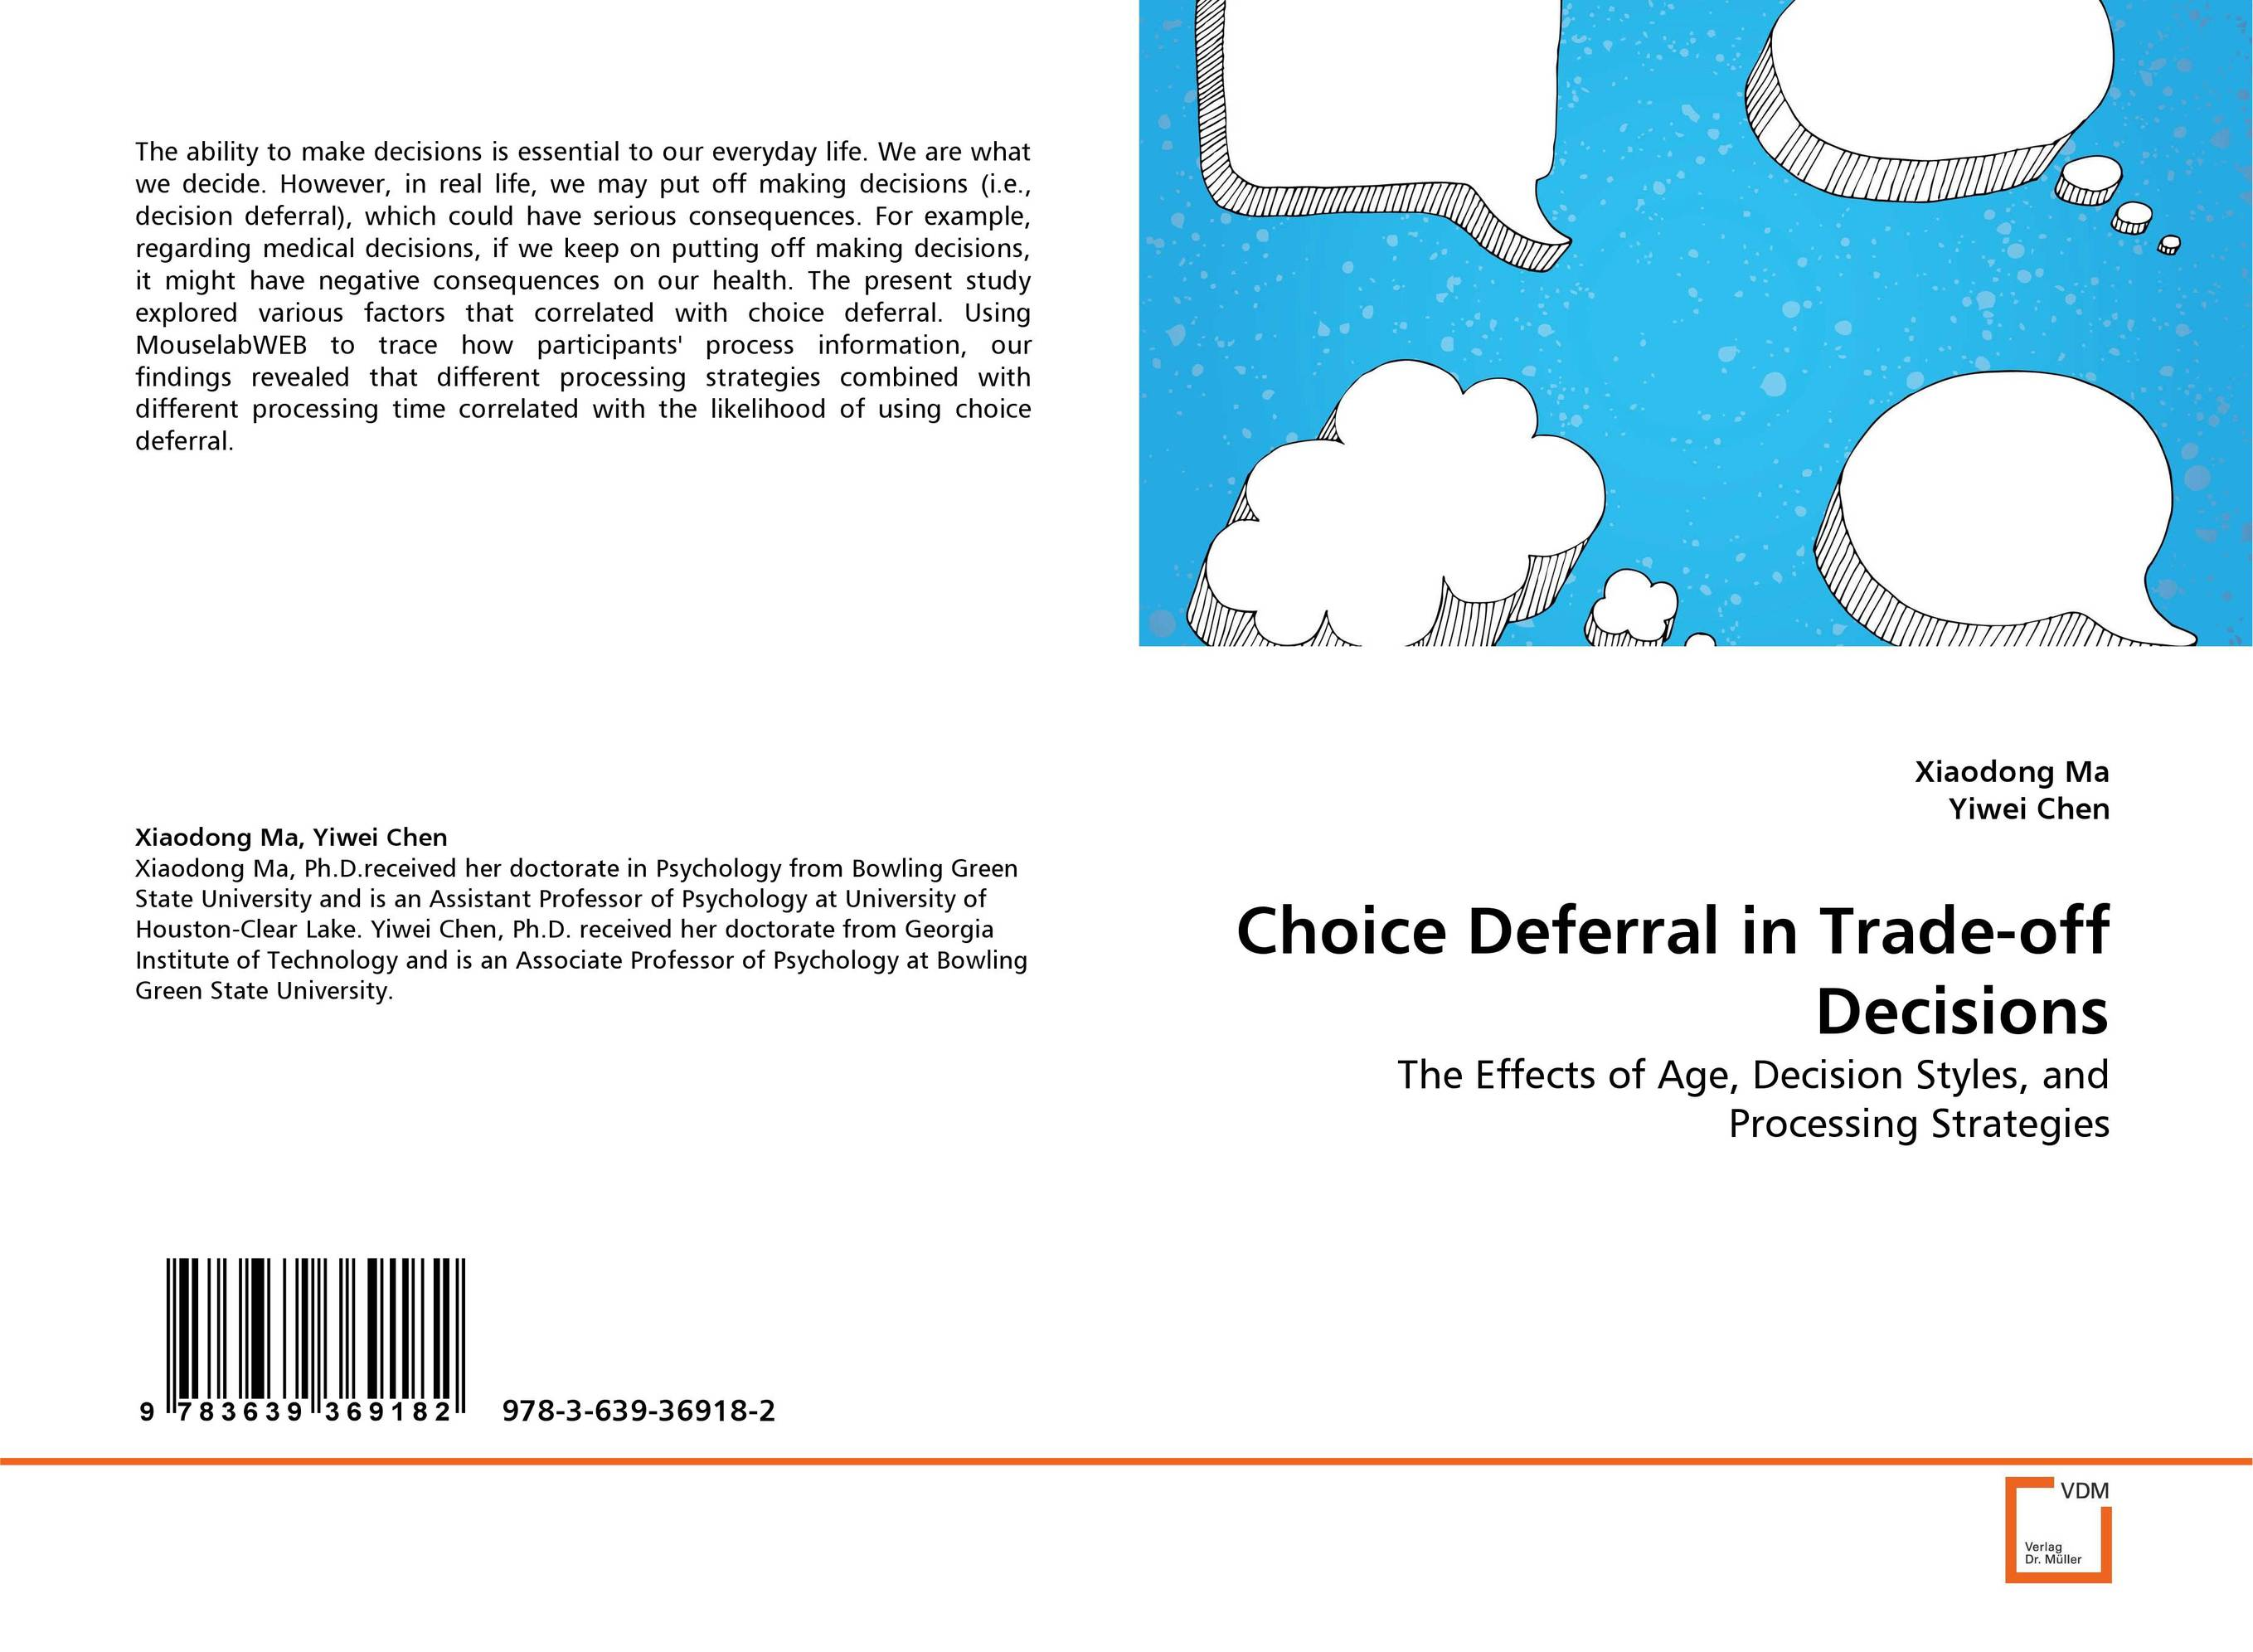 Choice Deferral in Trade-off Decisions course enrollment decisions